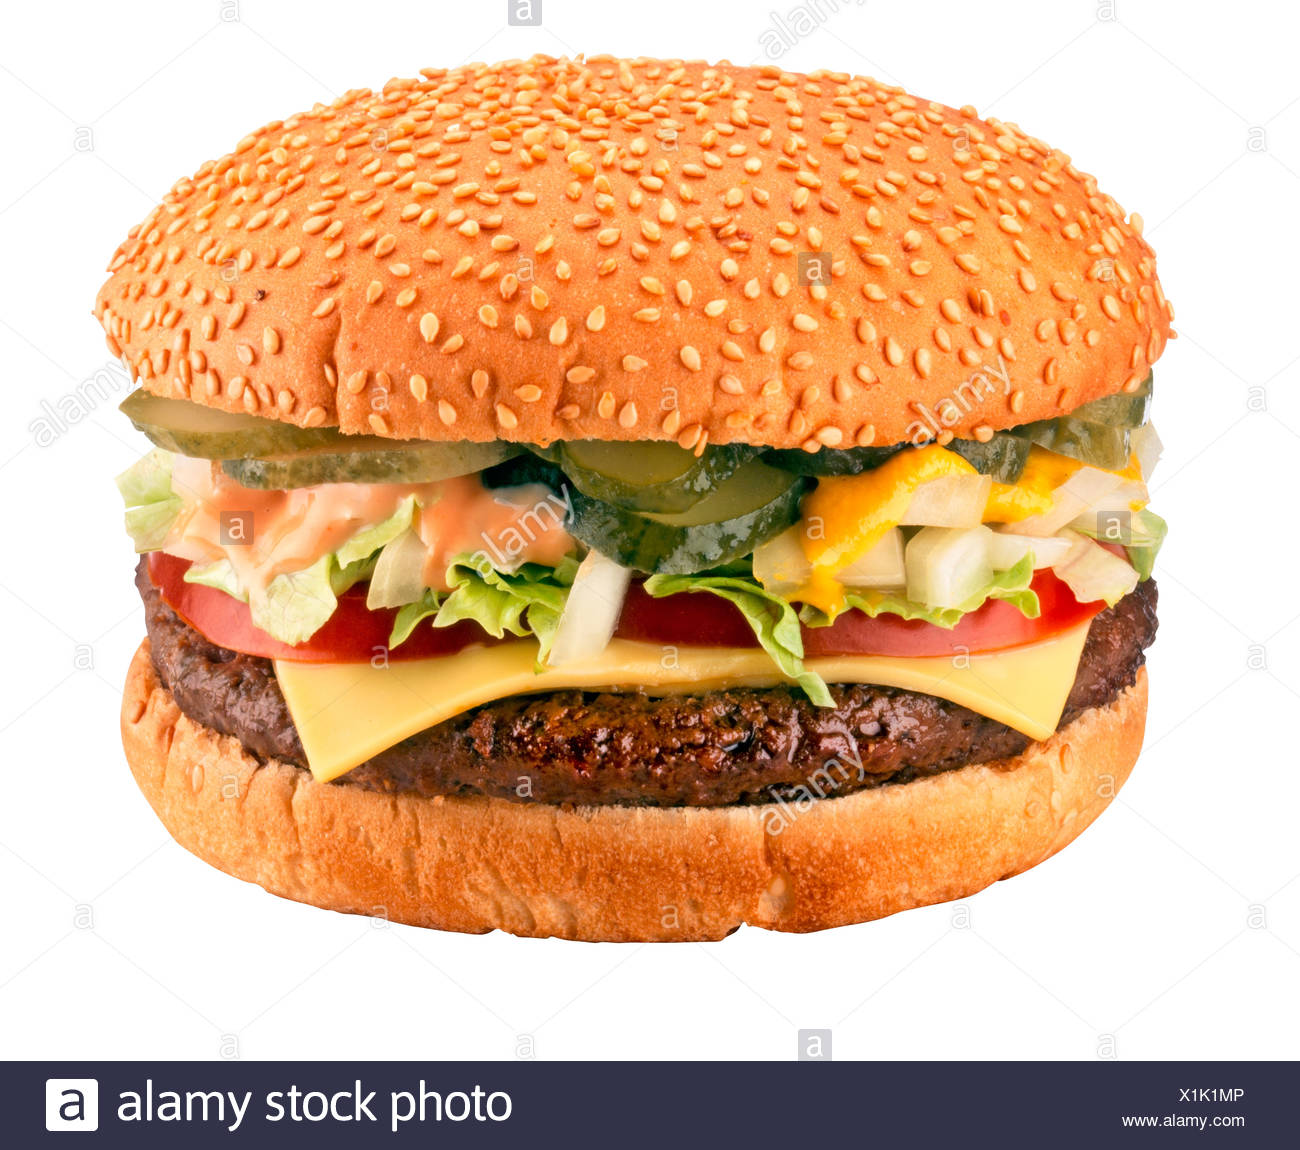 CUT OUT OF CHEESEBURGER - Stock Image